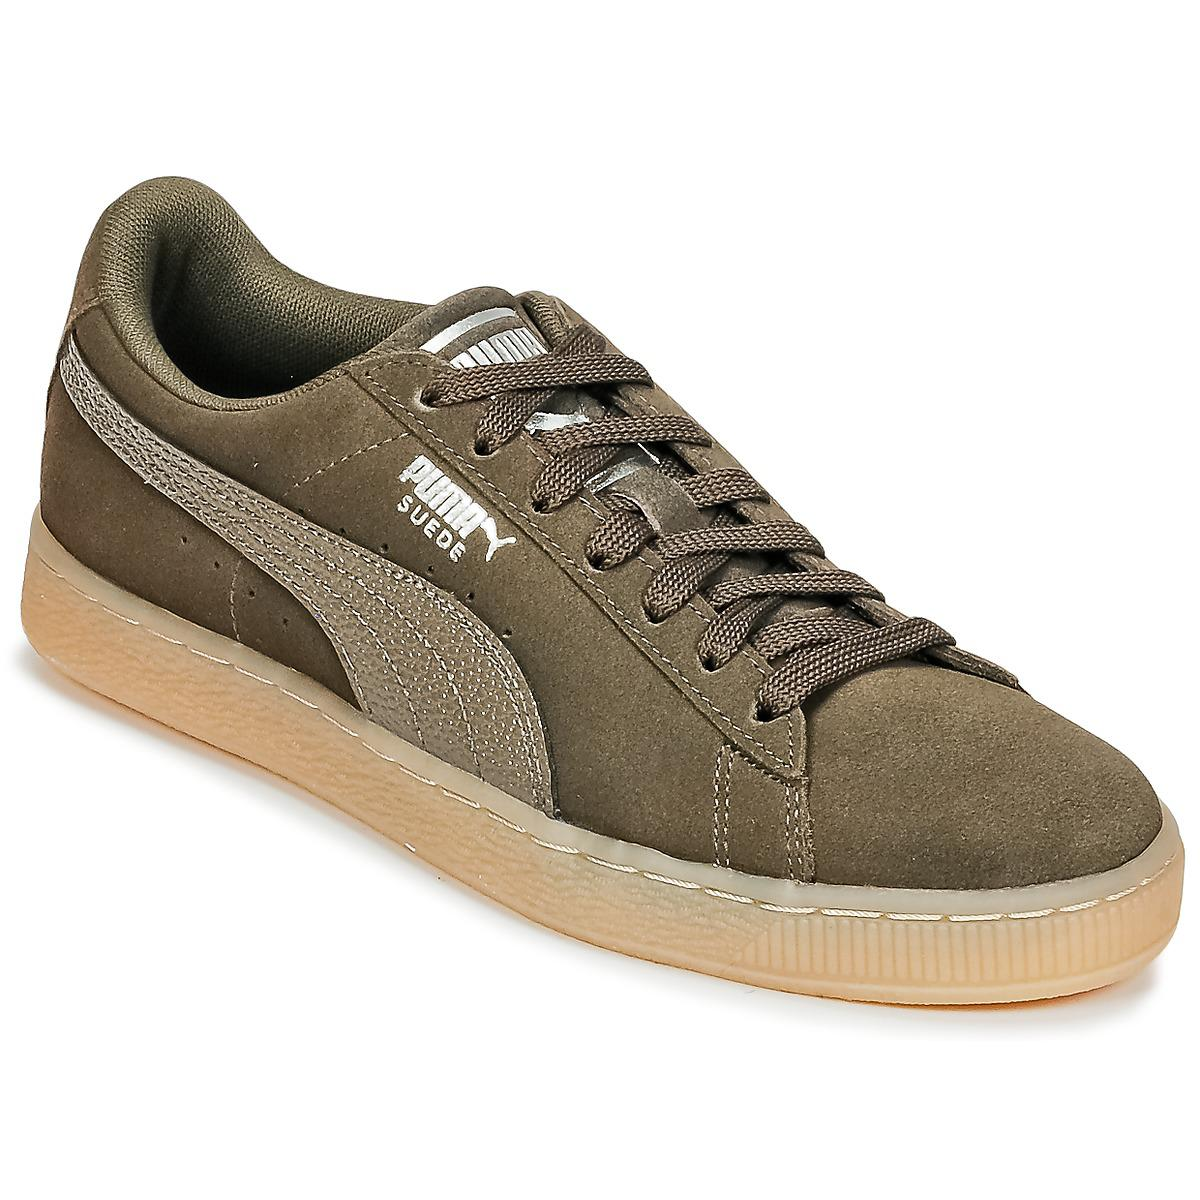 Buy Cheap Websites Puma SUEDE CLASSIC BUBBLE W'S women's Shoes (Trainers) in Latest Collections Cheap Price Very Cheap Clearance Supply Outlet Low Shipping aJU0TW